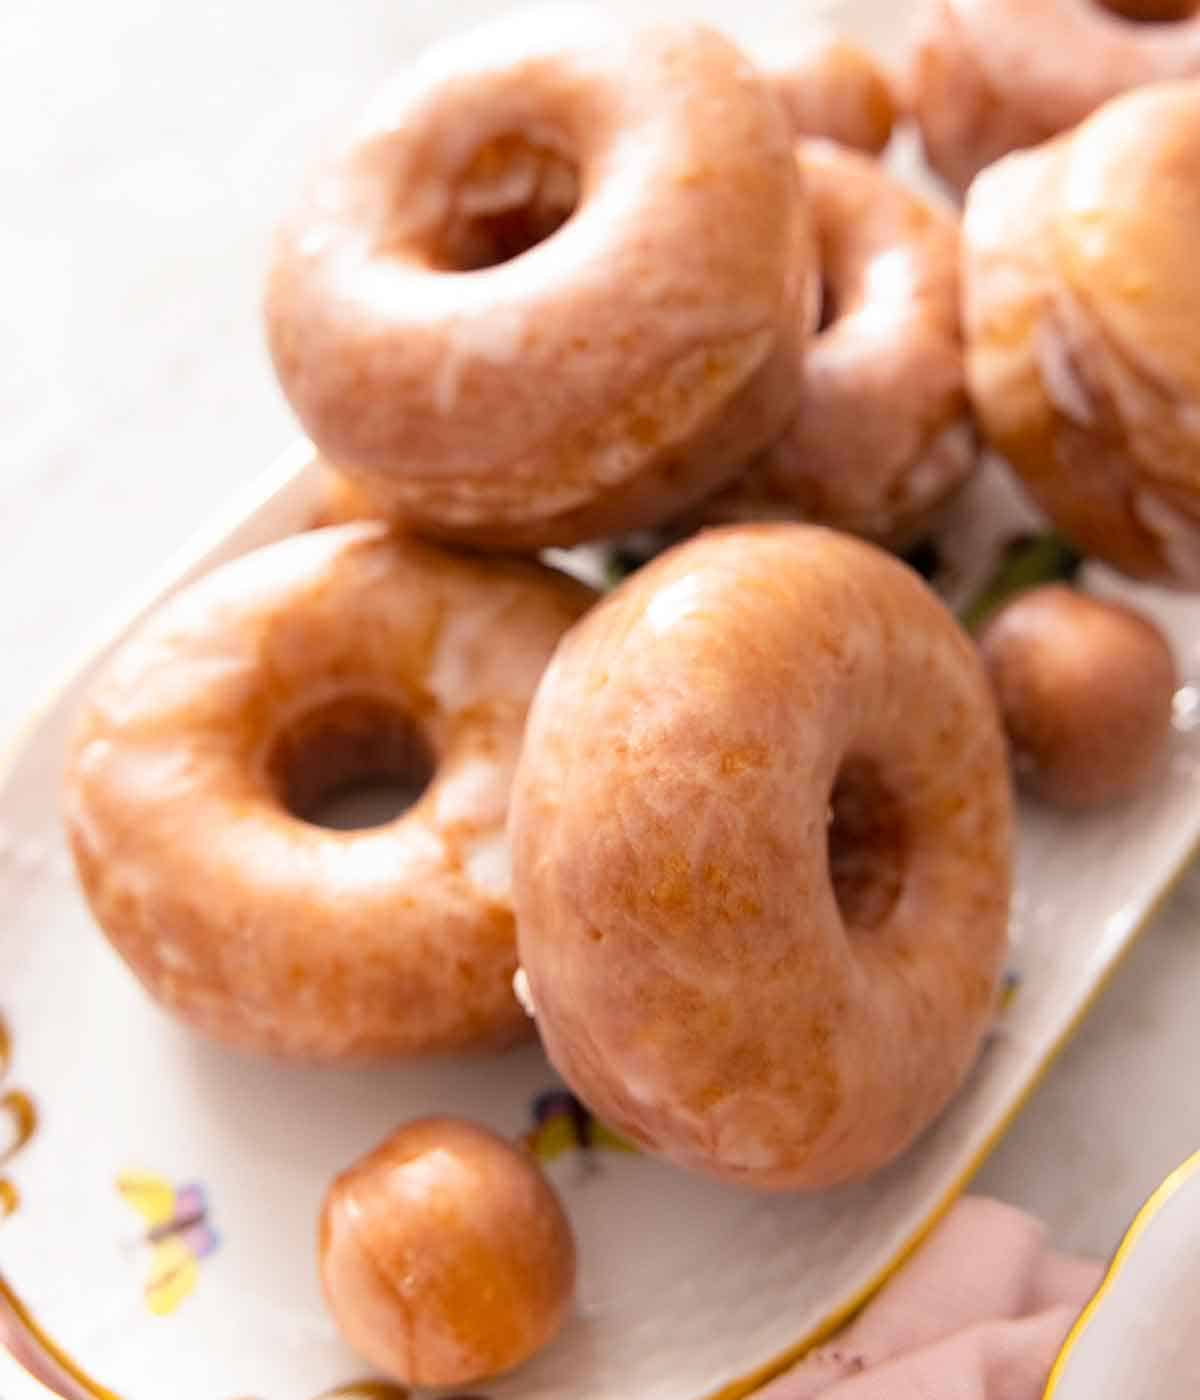 A platter of glazed donuts stacked on top of each other with donut holes.